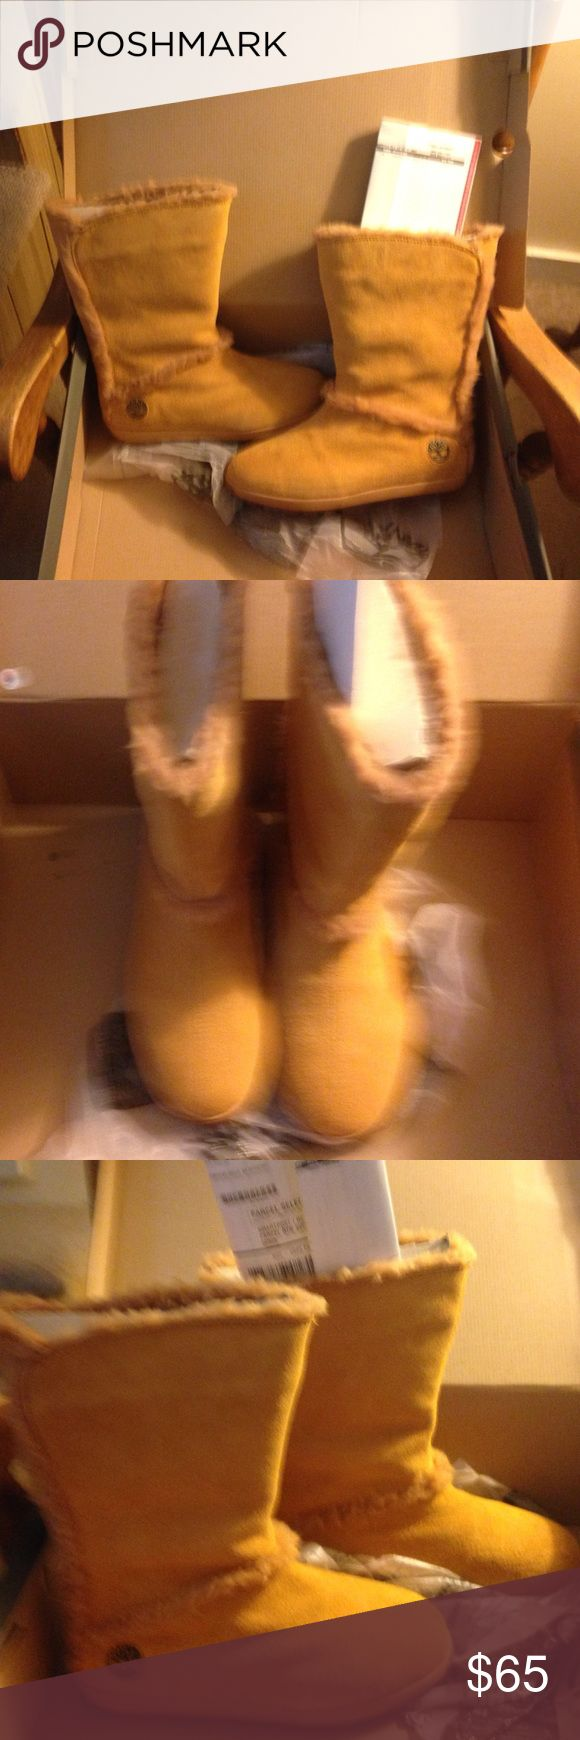 """Timberland 10"""" Mukluk Boots Never worn, comfy Timberland boots still in box with receipt no tags but  original box and dust cover. Timberland Shoes Winter & Rain Boots"""